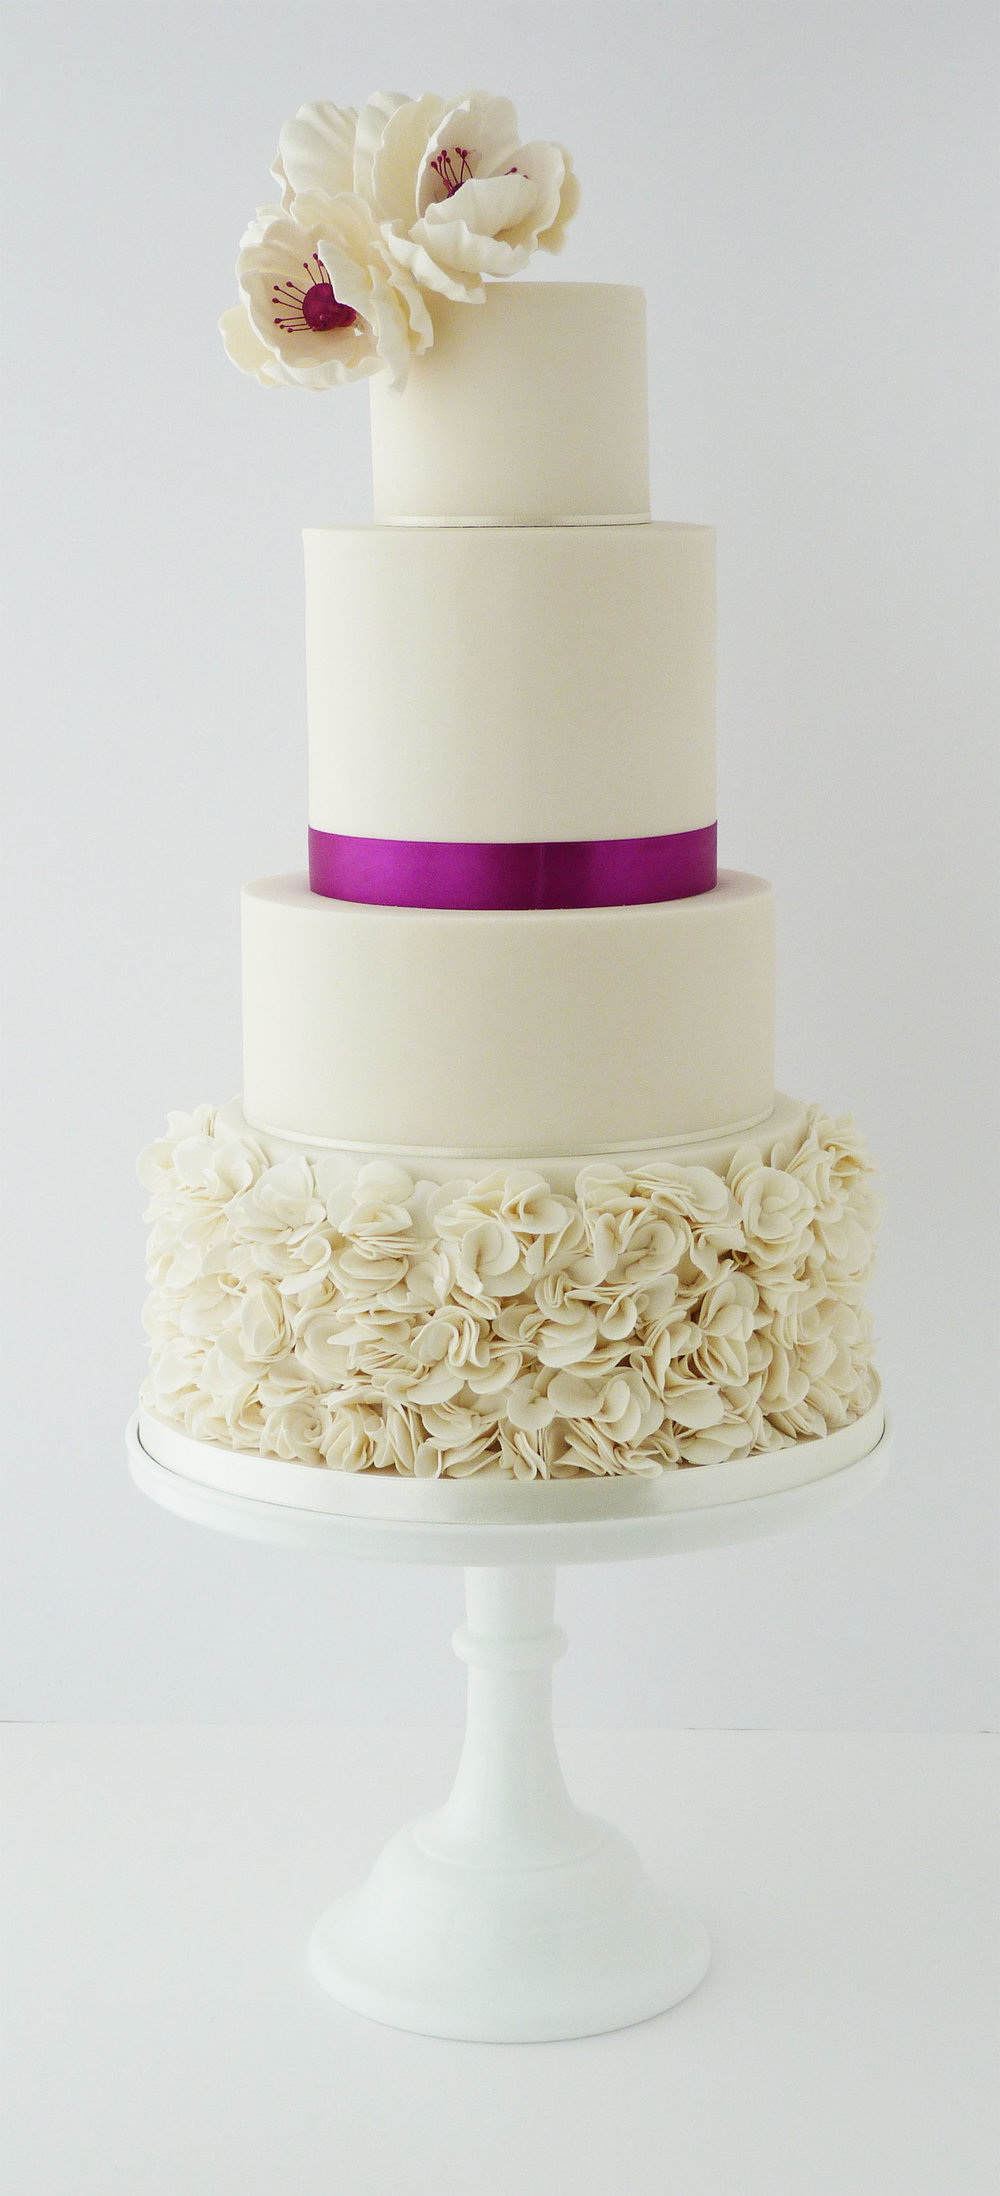 Stephanie and Mark ruffle wedding cake.jpg